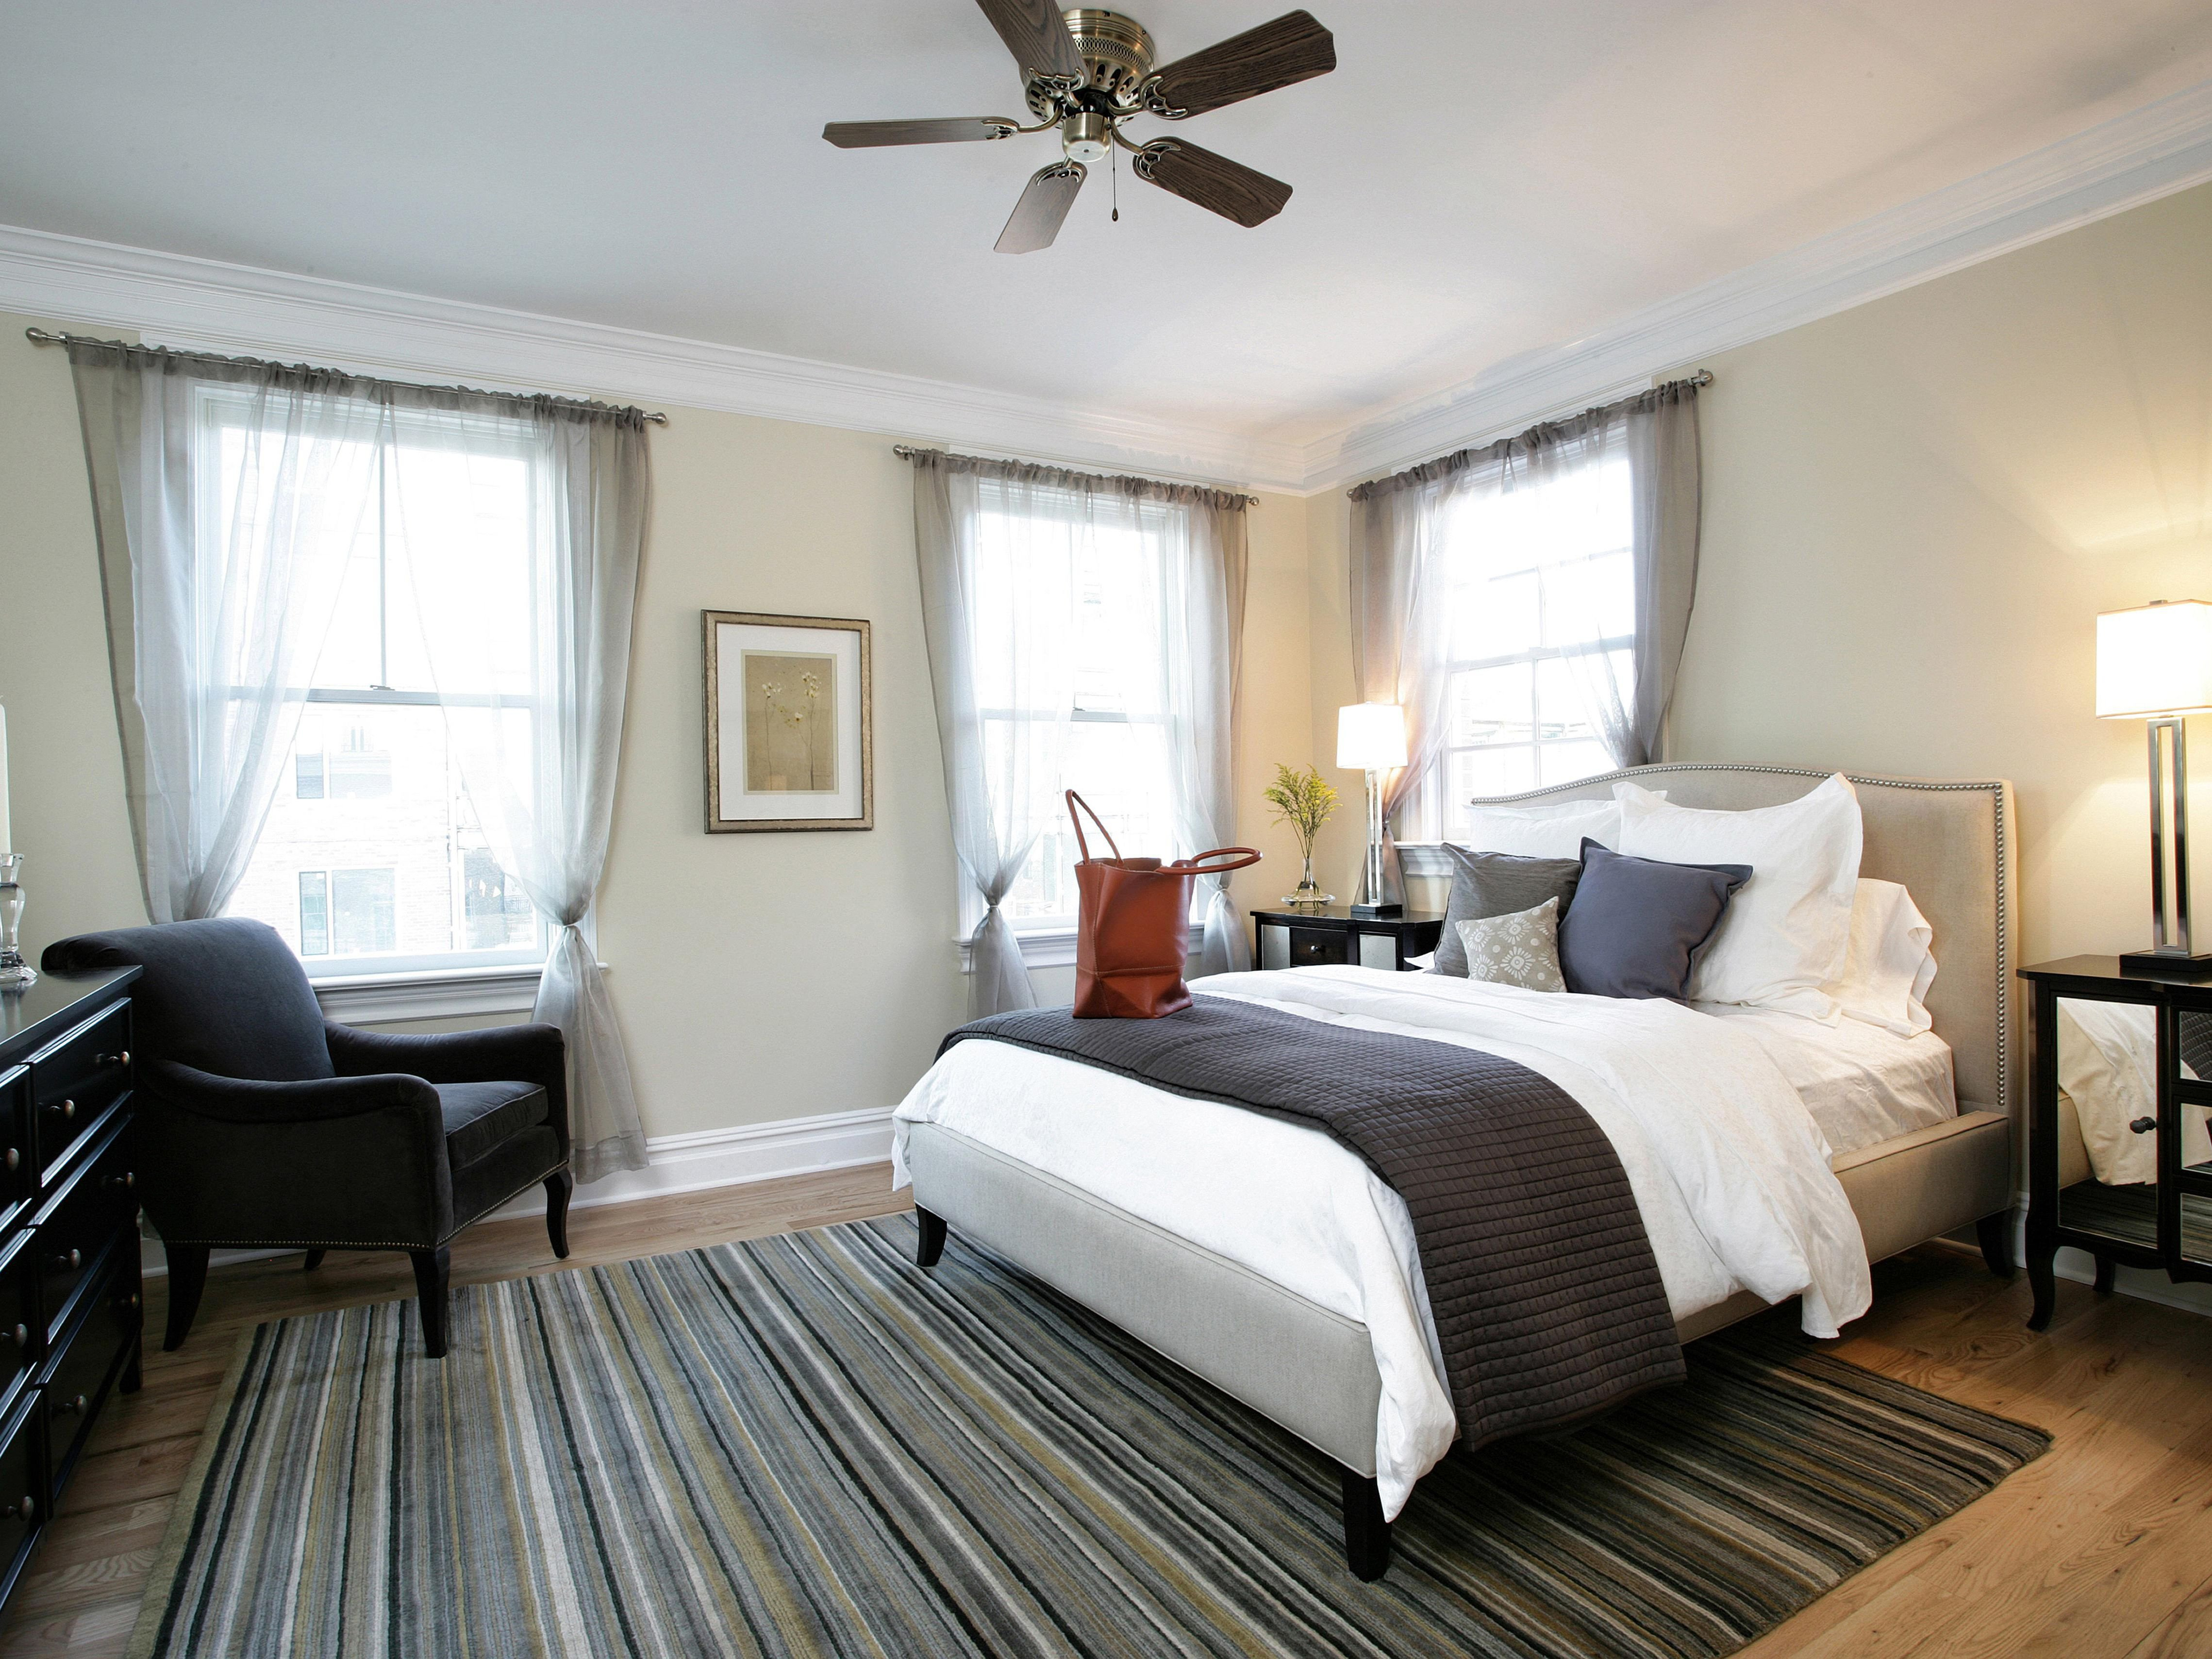 Bedroom Furniture Hardware Replacement Fresh 10 Tricks to Make Your Bedroom Look Expensive